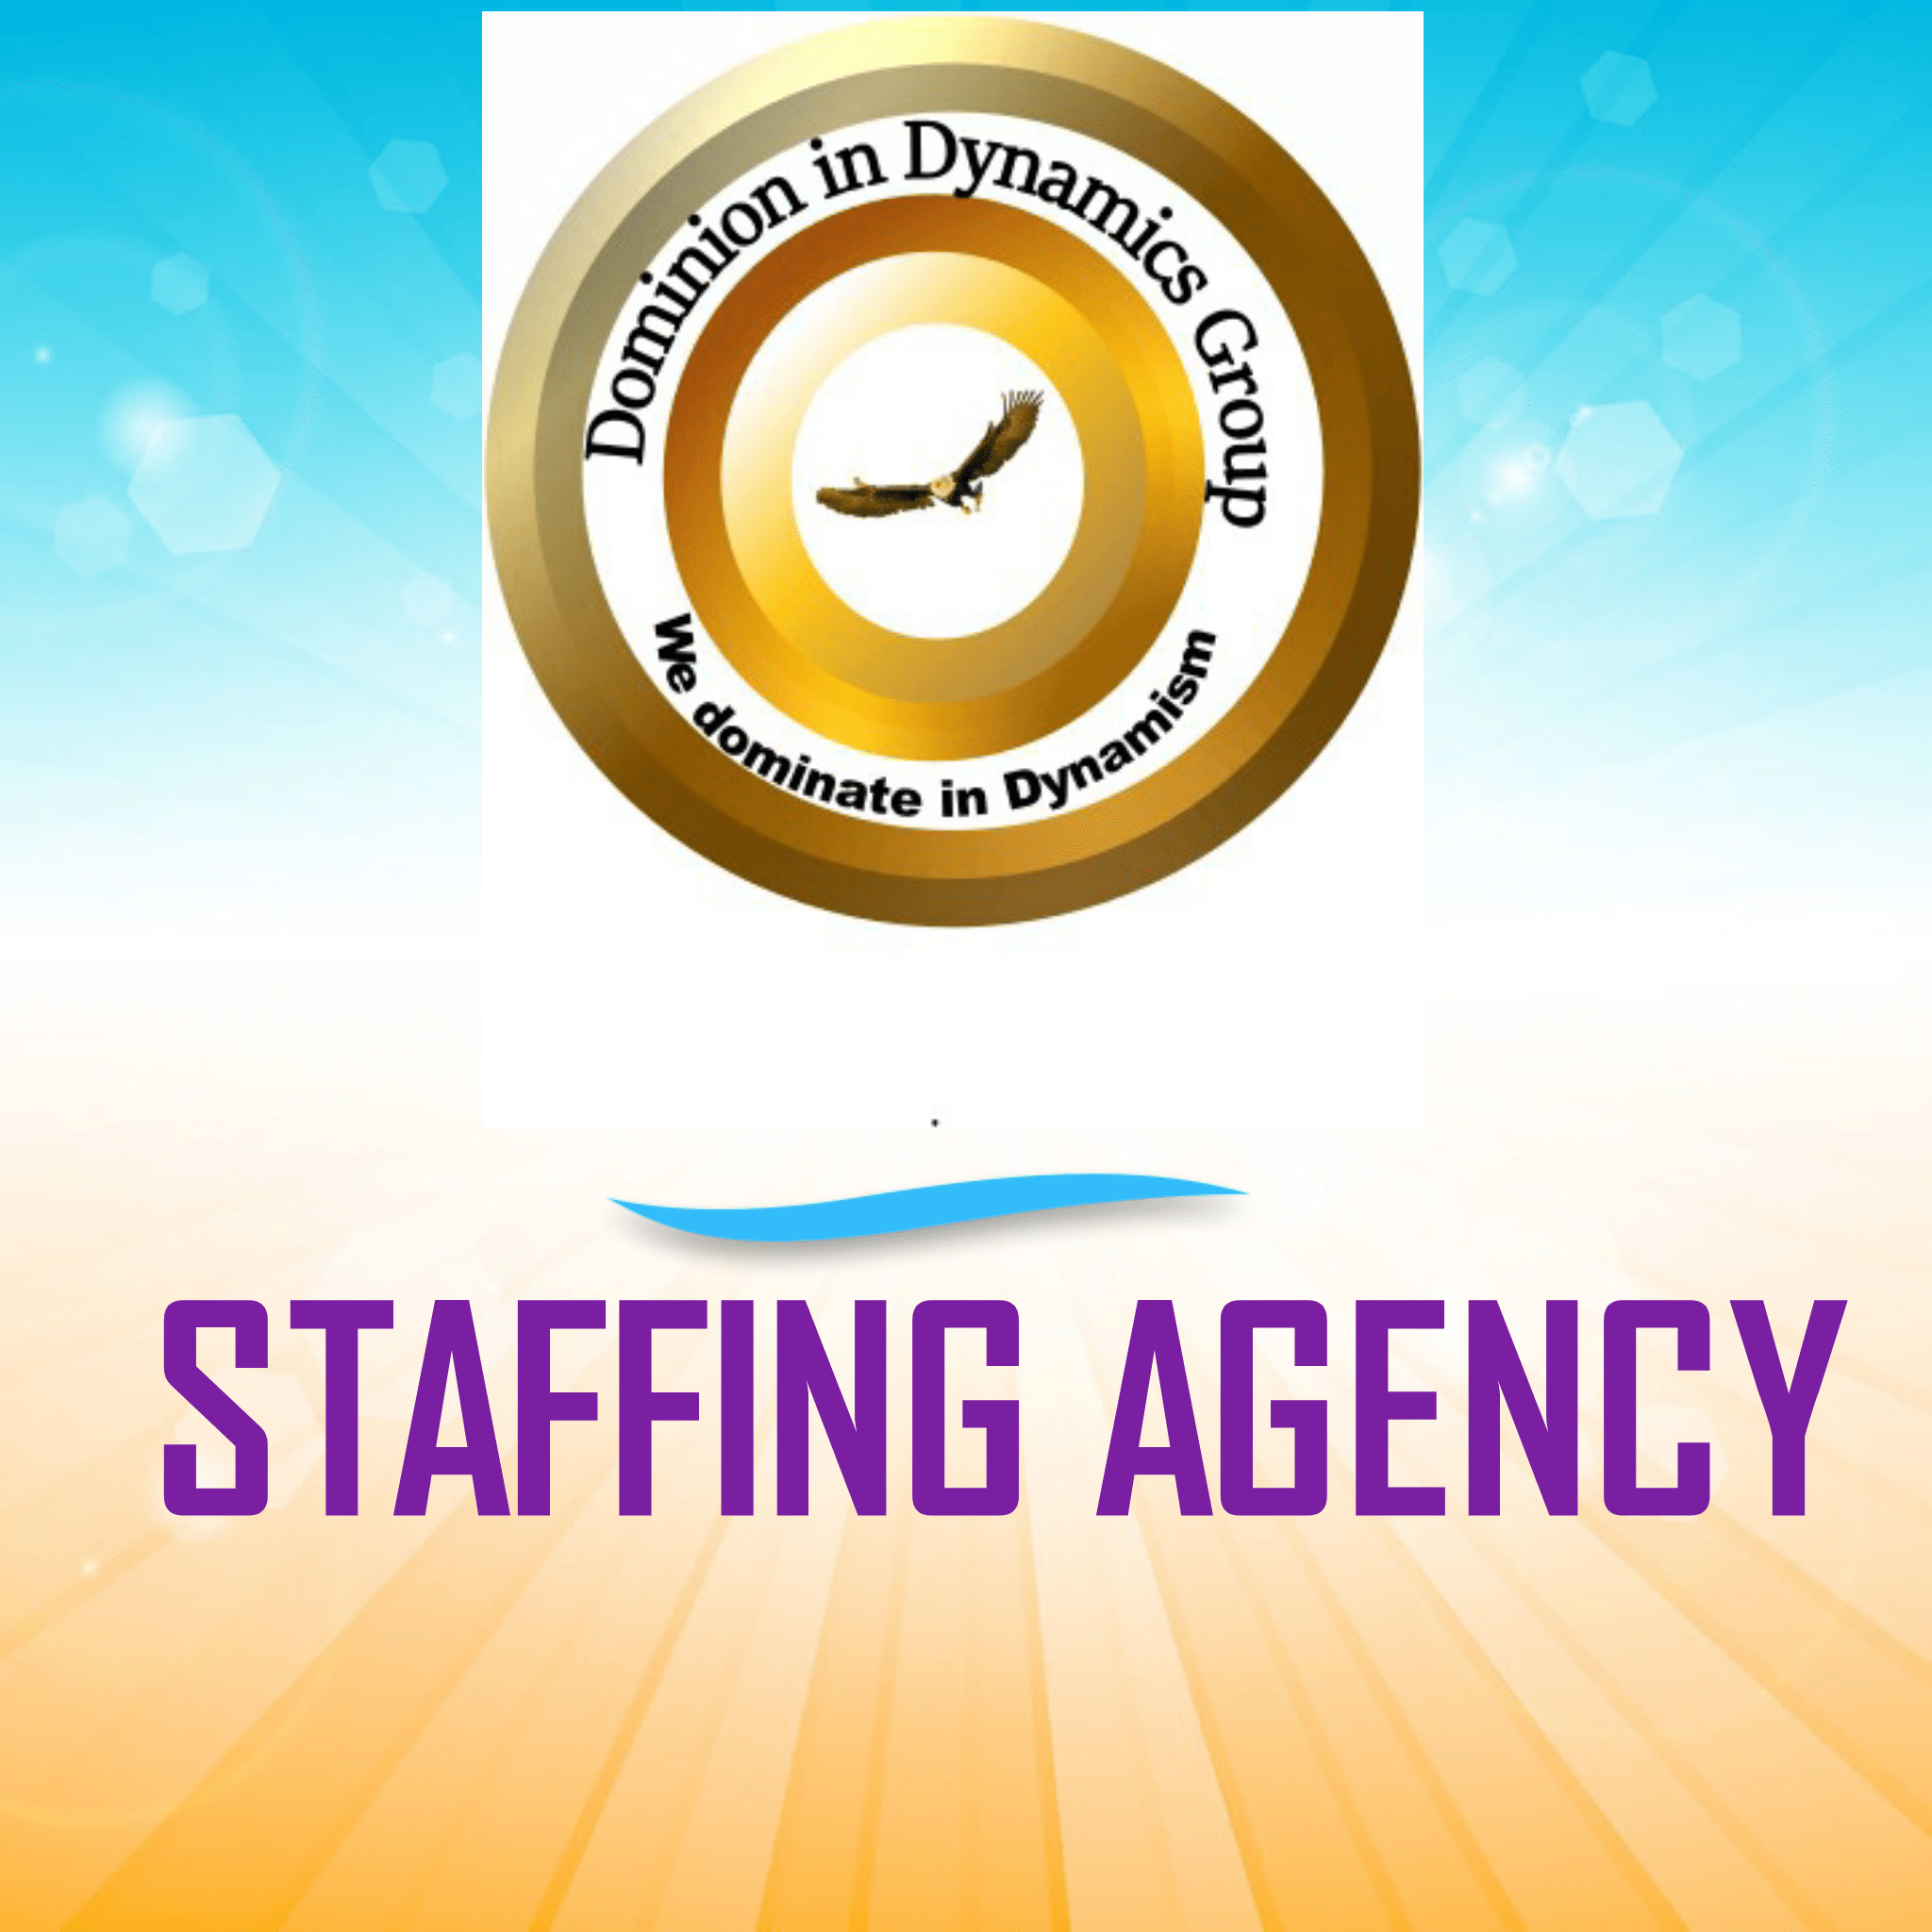 D in D staffing agency